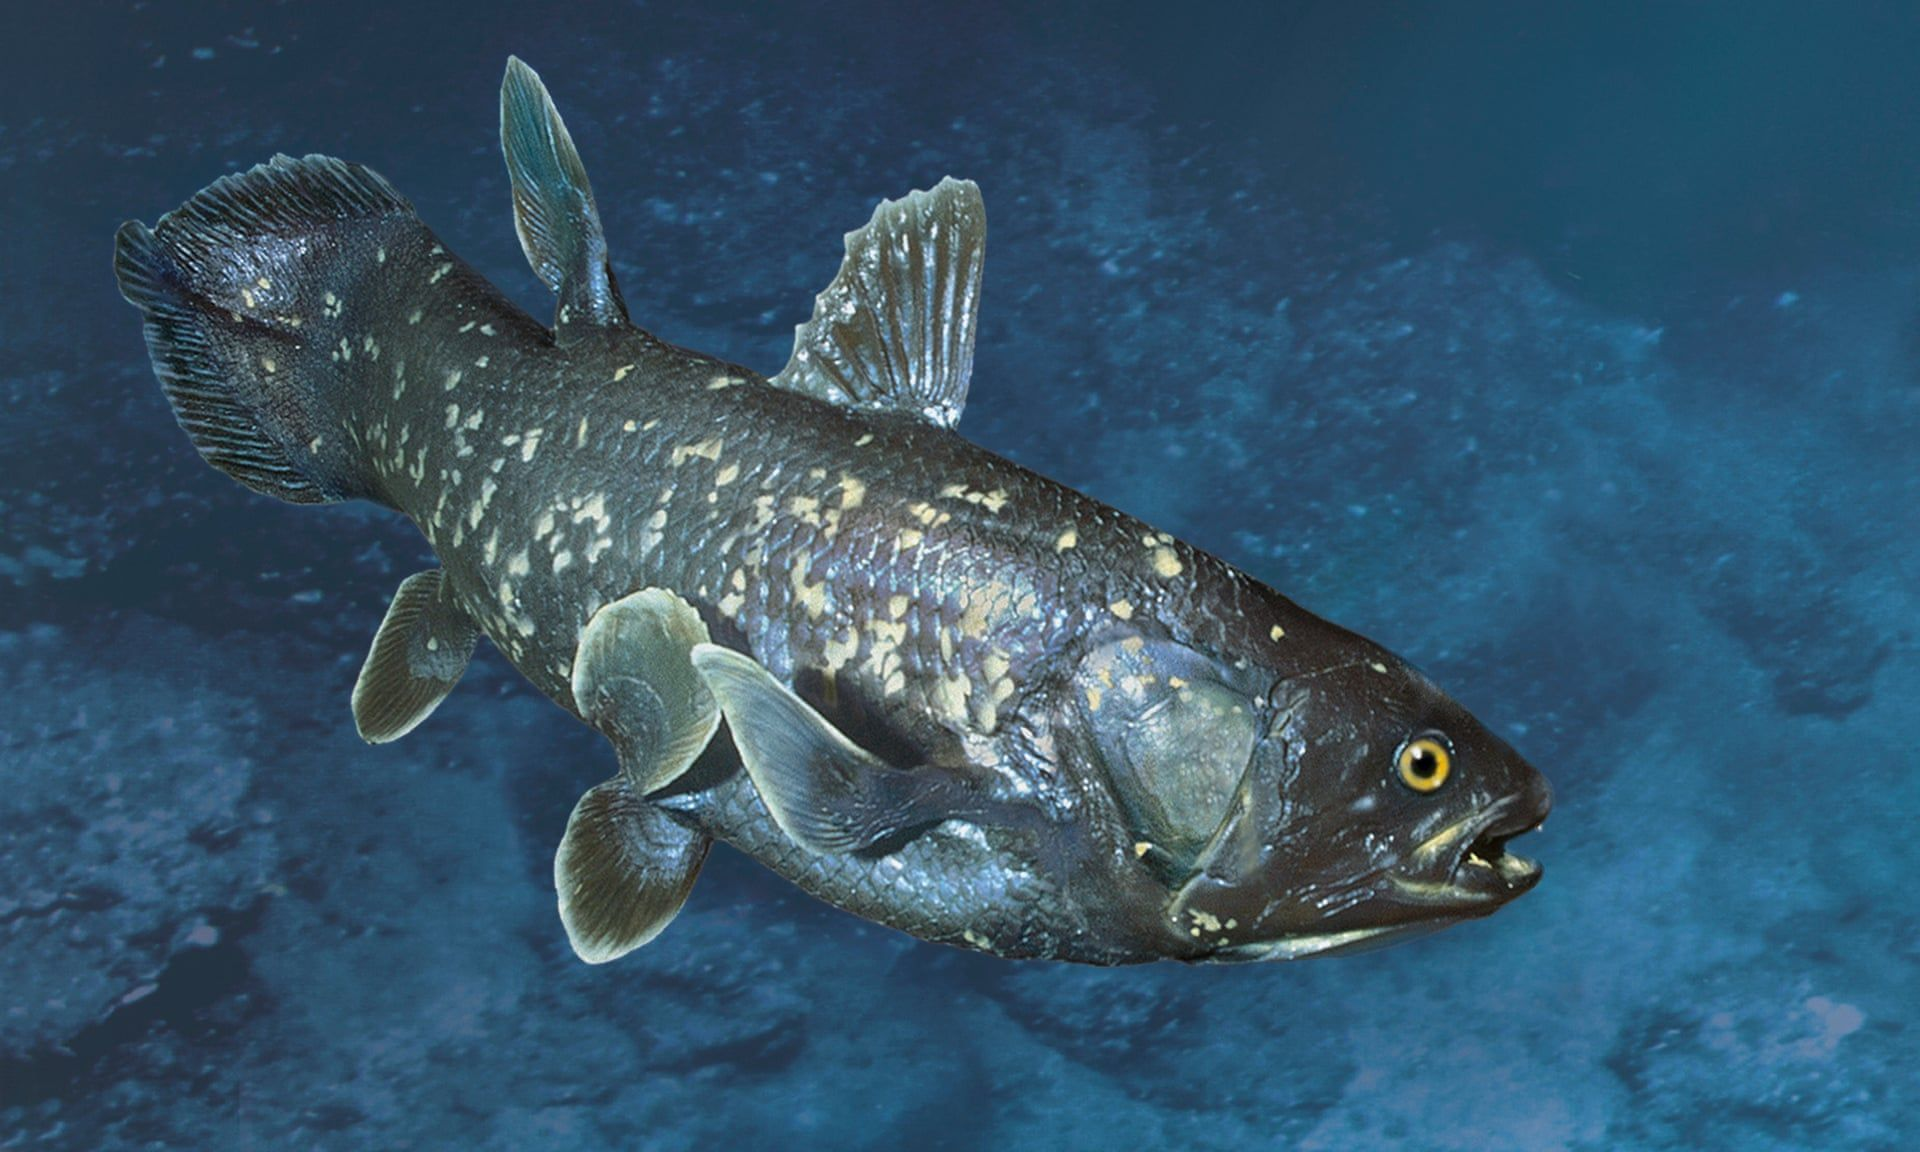 Coelacanth. This large fish had been considered extinct